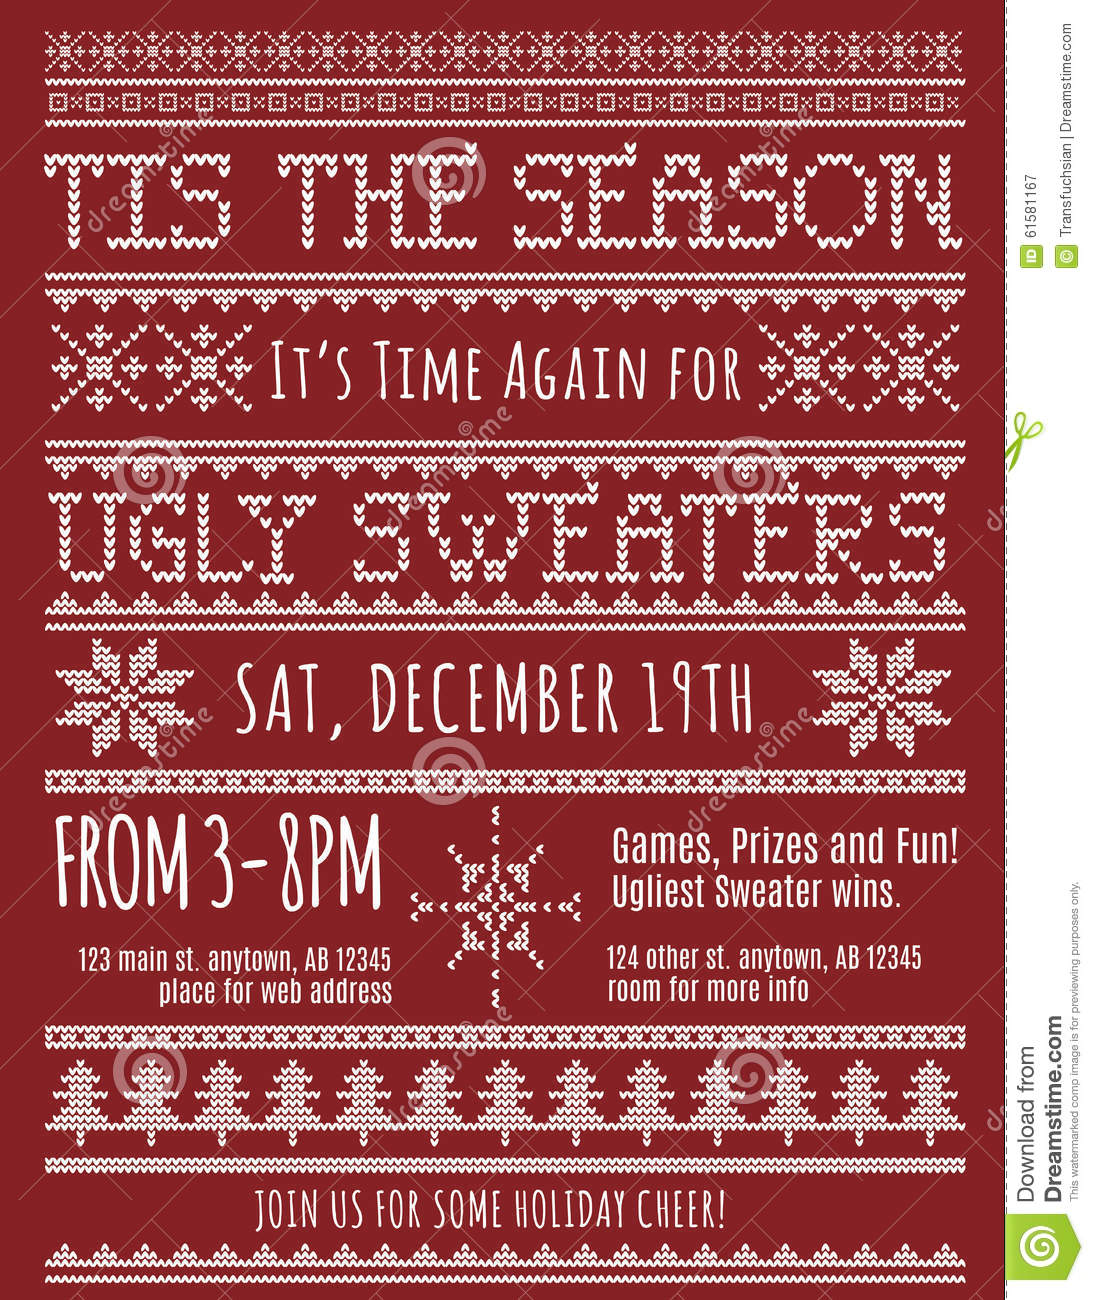 Ugly Christmas Sweater Design.Ugly Christmas Sweater Party Invitation Stock Vector